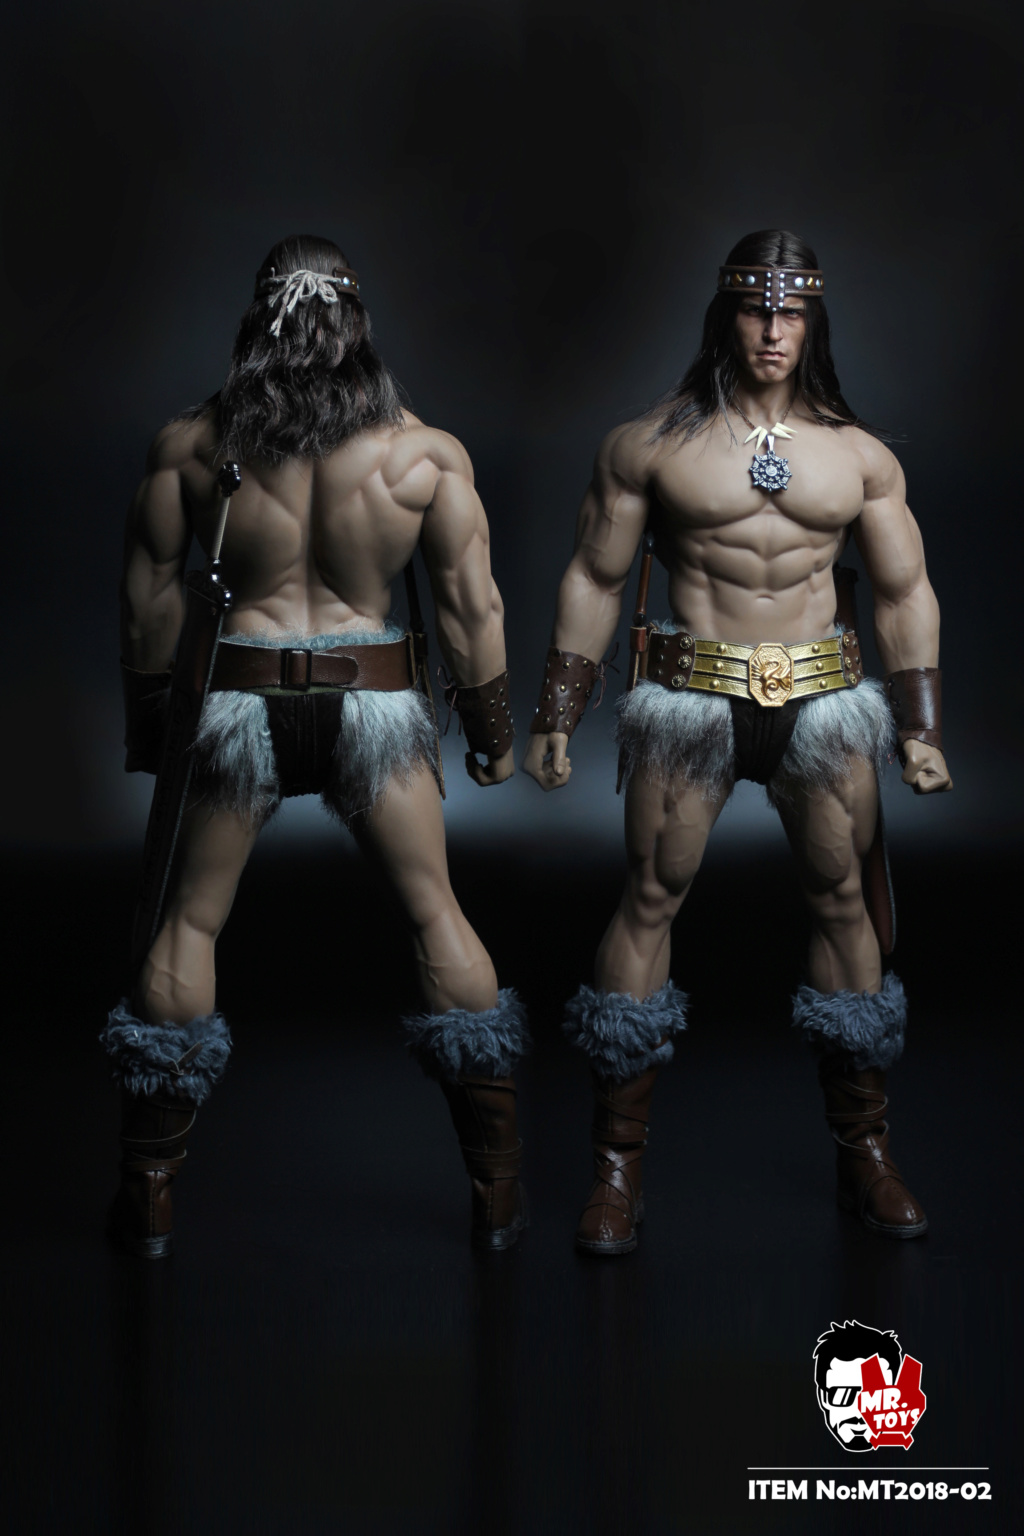 NEW PRODUCT:  Mr. Toys MT2018-02 1/6 Conan head carving costume set O1cn0115